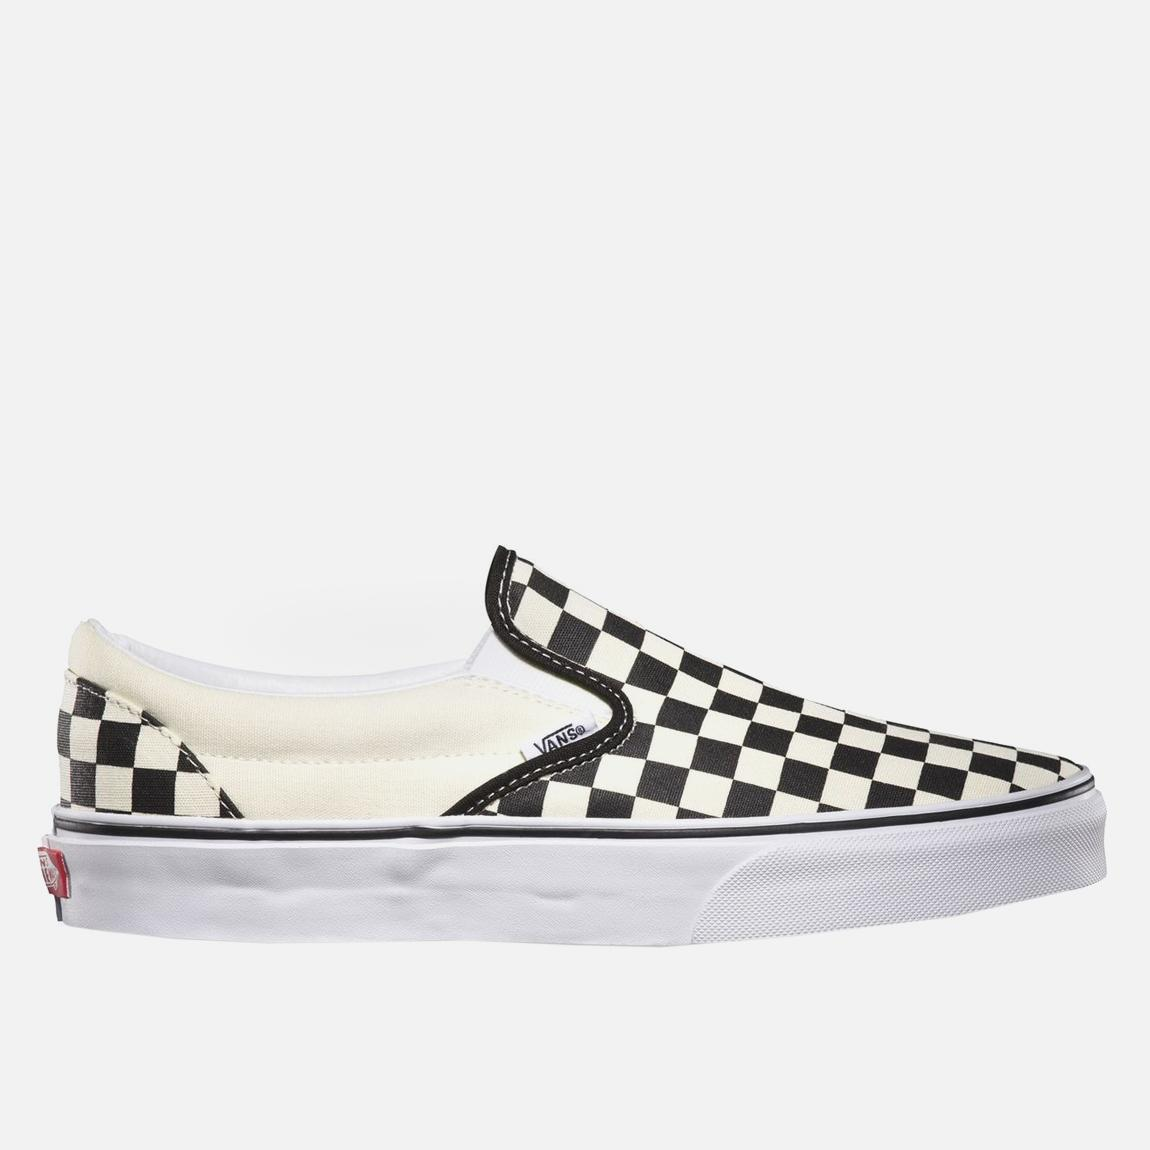 vans authentic checker board black white vans sneakers. Black Bedroom Furniture Sets. Home Design Ideas